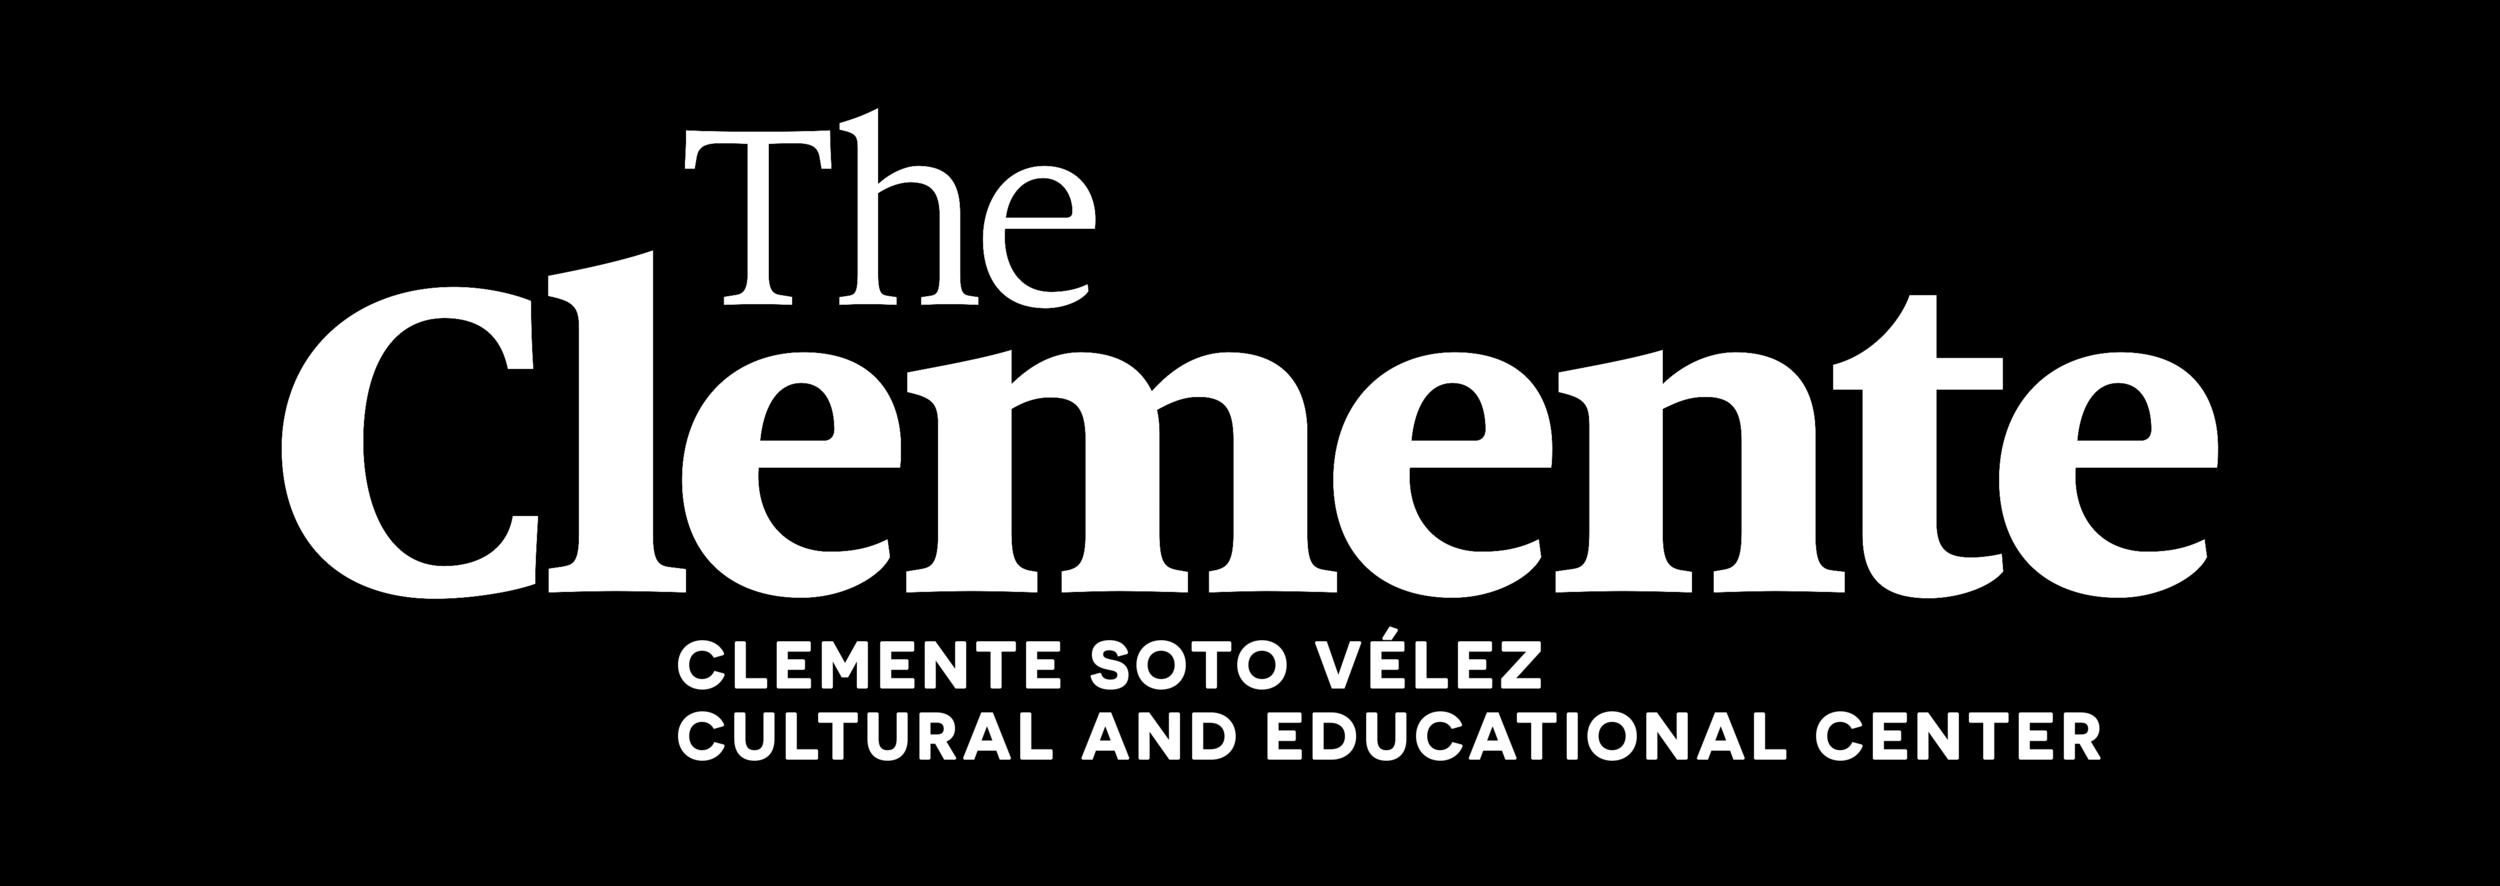 TheClemente-LOGO_PSD.png